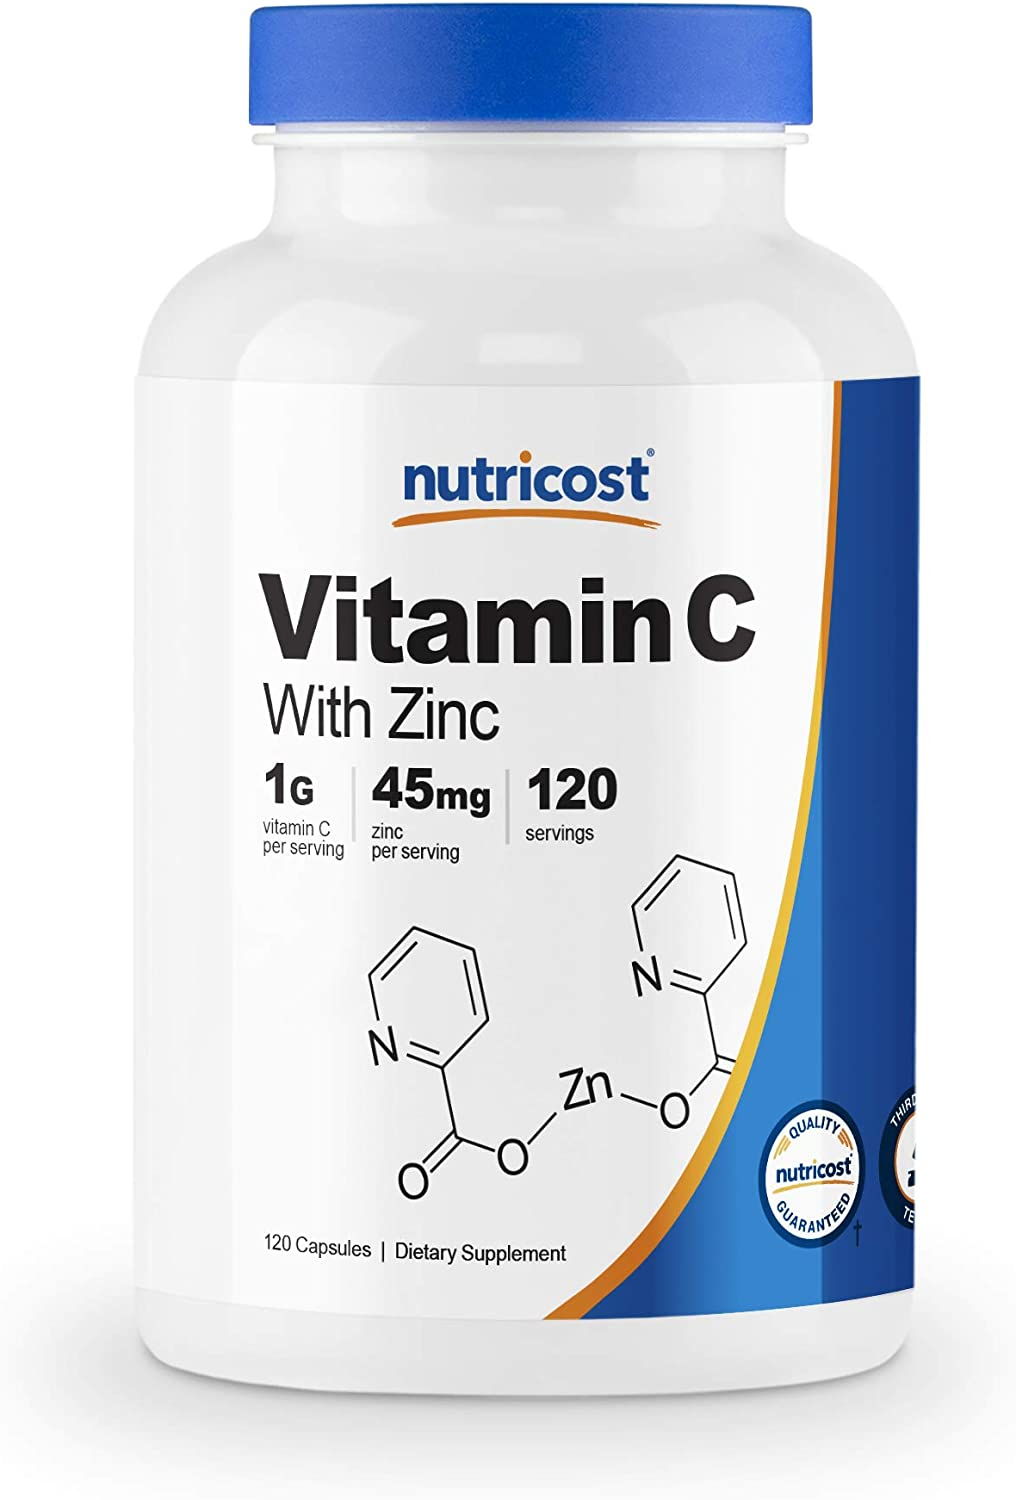 Nutricost Vitamin C with Zinc, 120 Capsules - 1000mg Vitamin C, 45mg Zinc, Non-GMO, Gluten Free Vitamin C Supplement